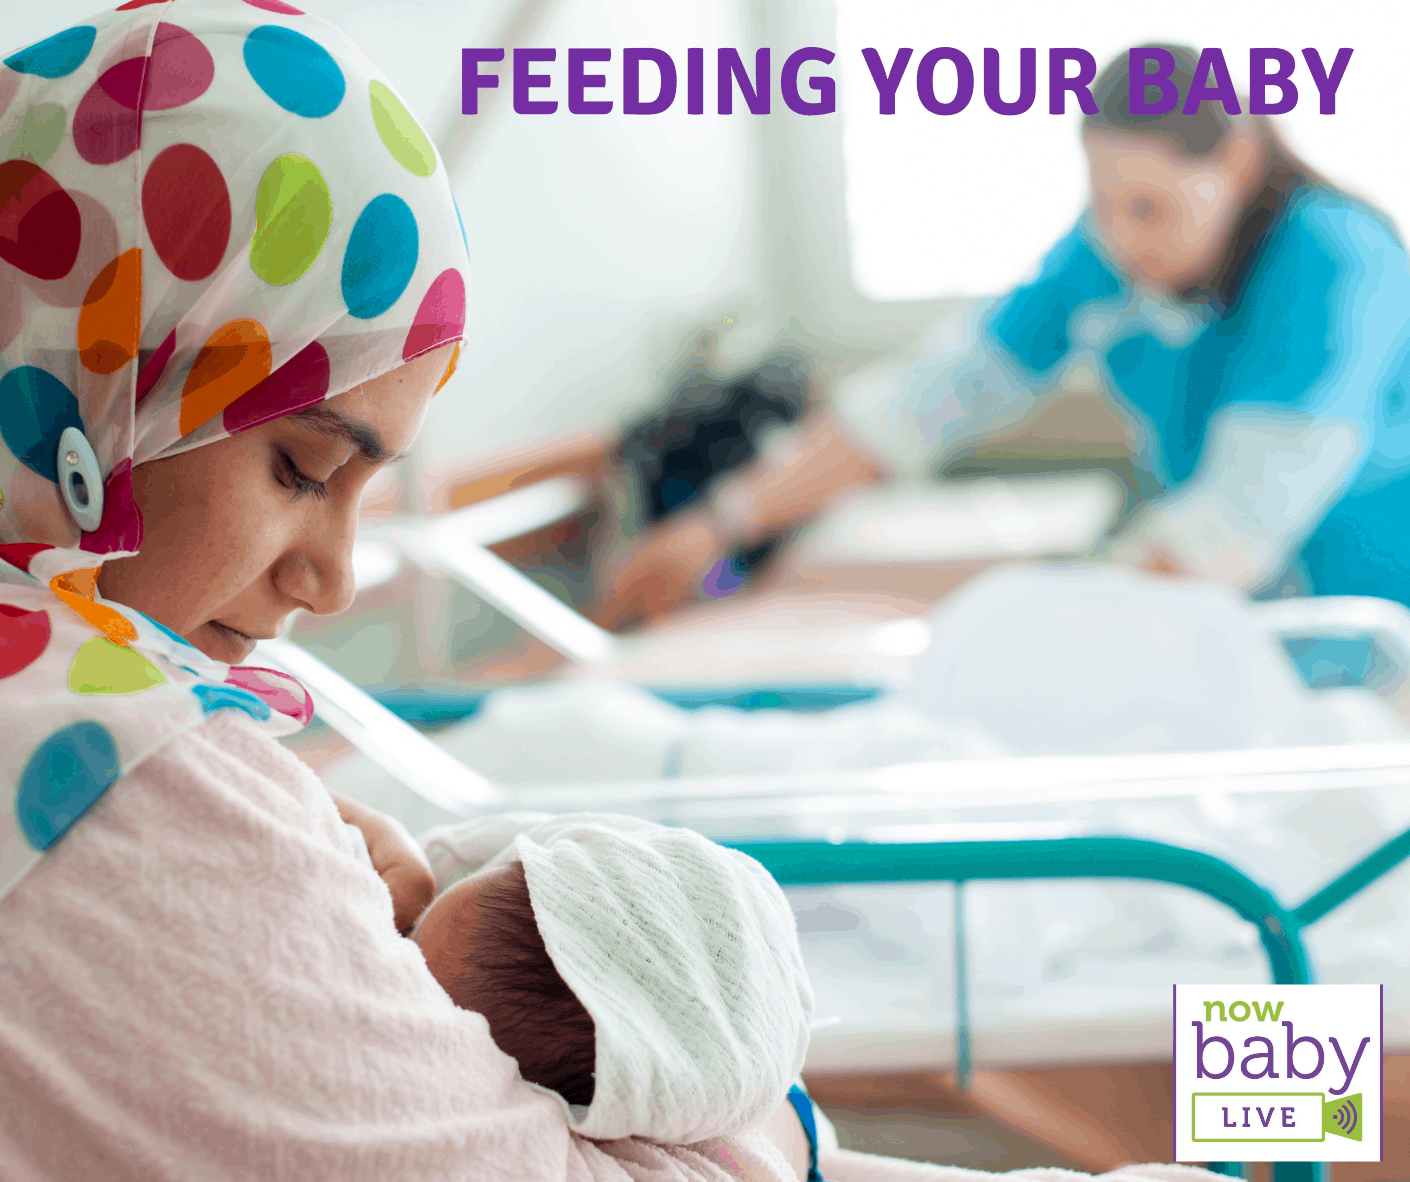 Feeding your baby – a quick guide for mums